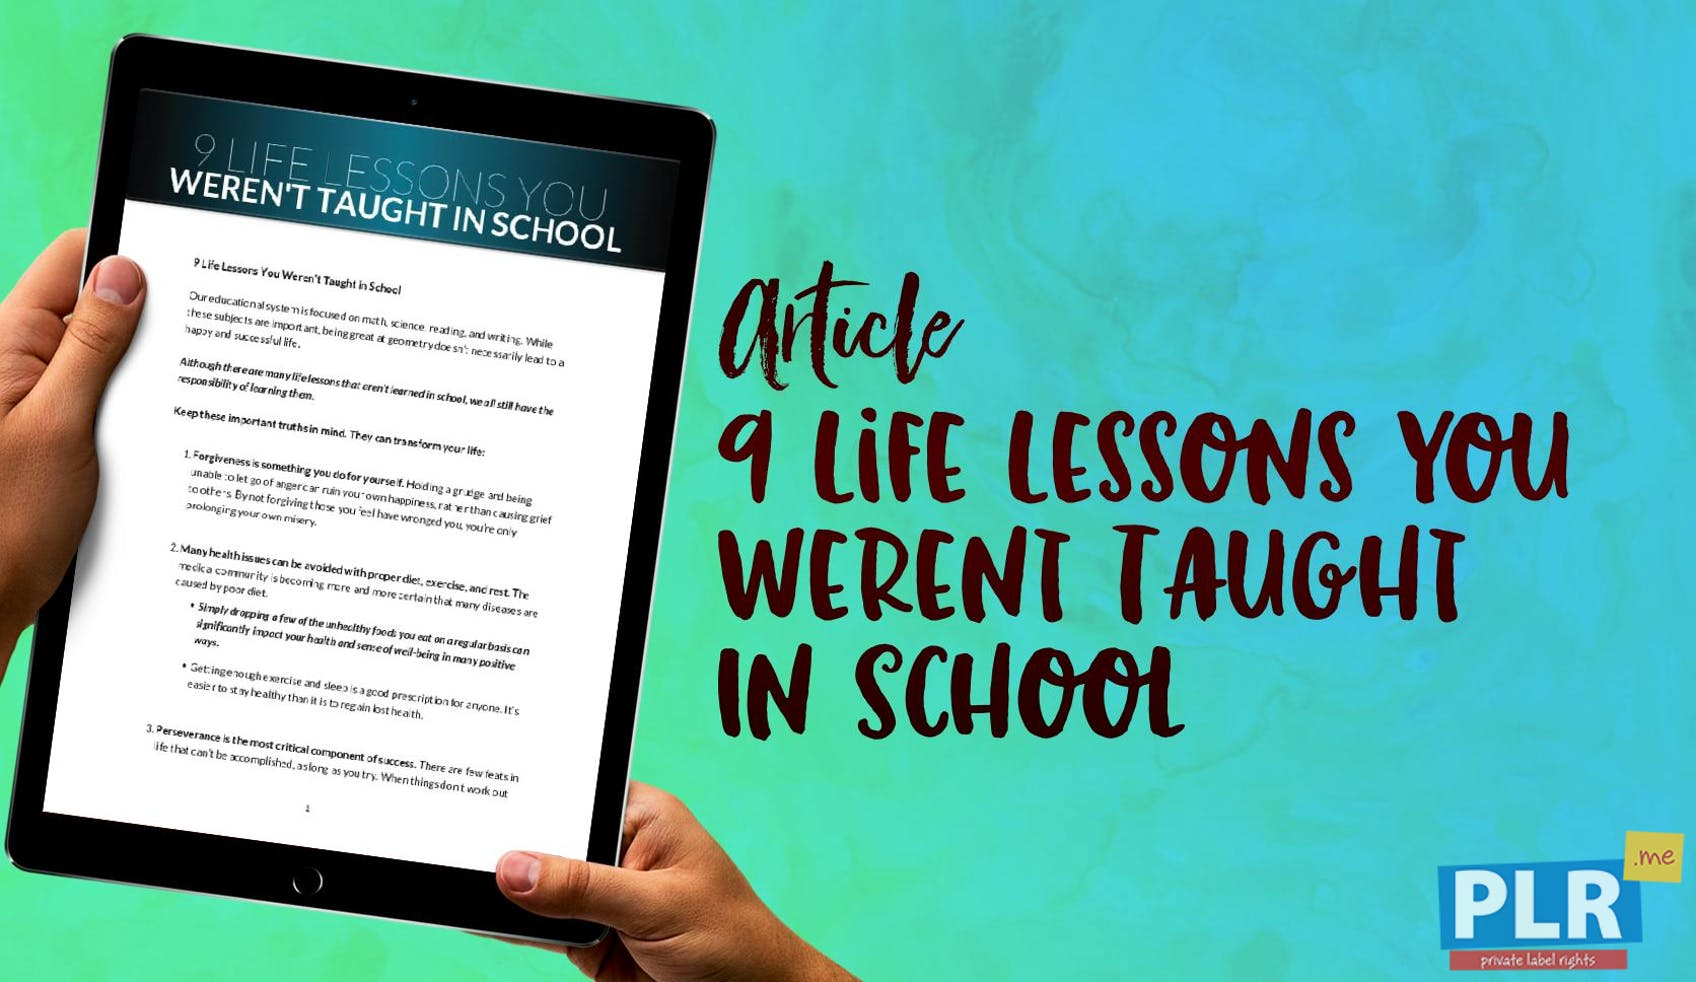 9 Life Lessons You Werent Taught In School